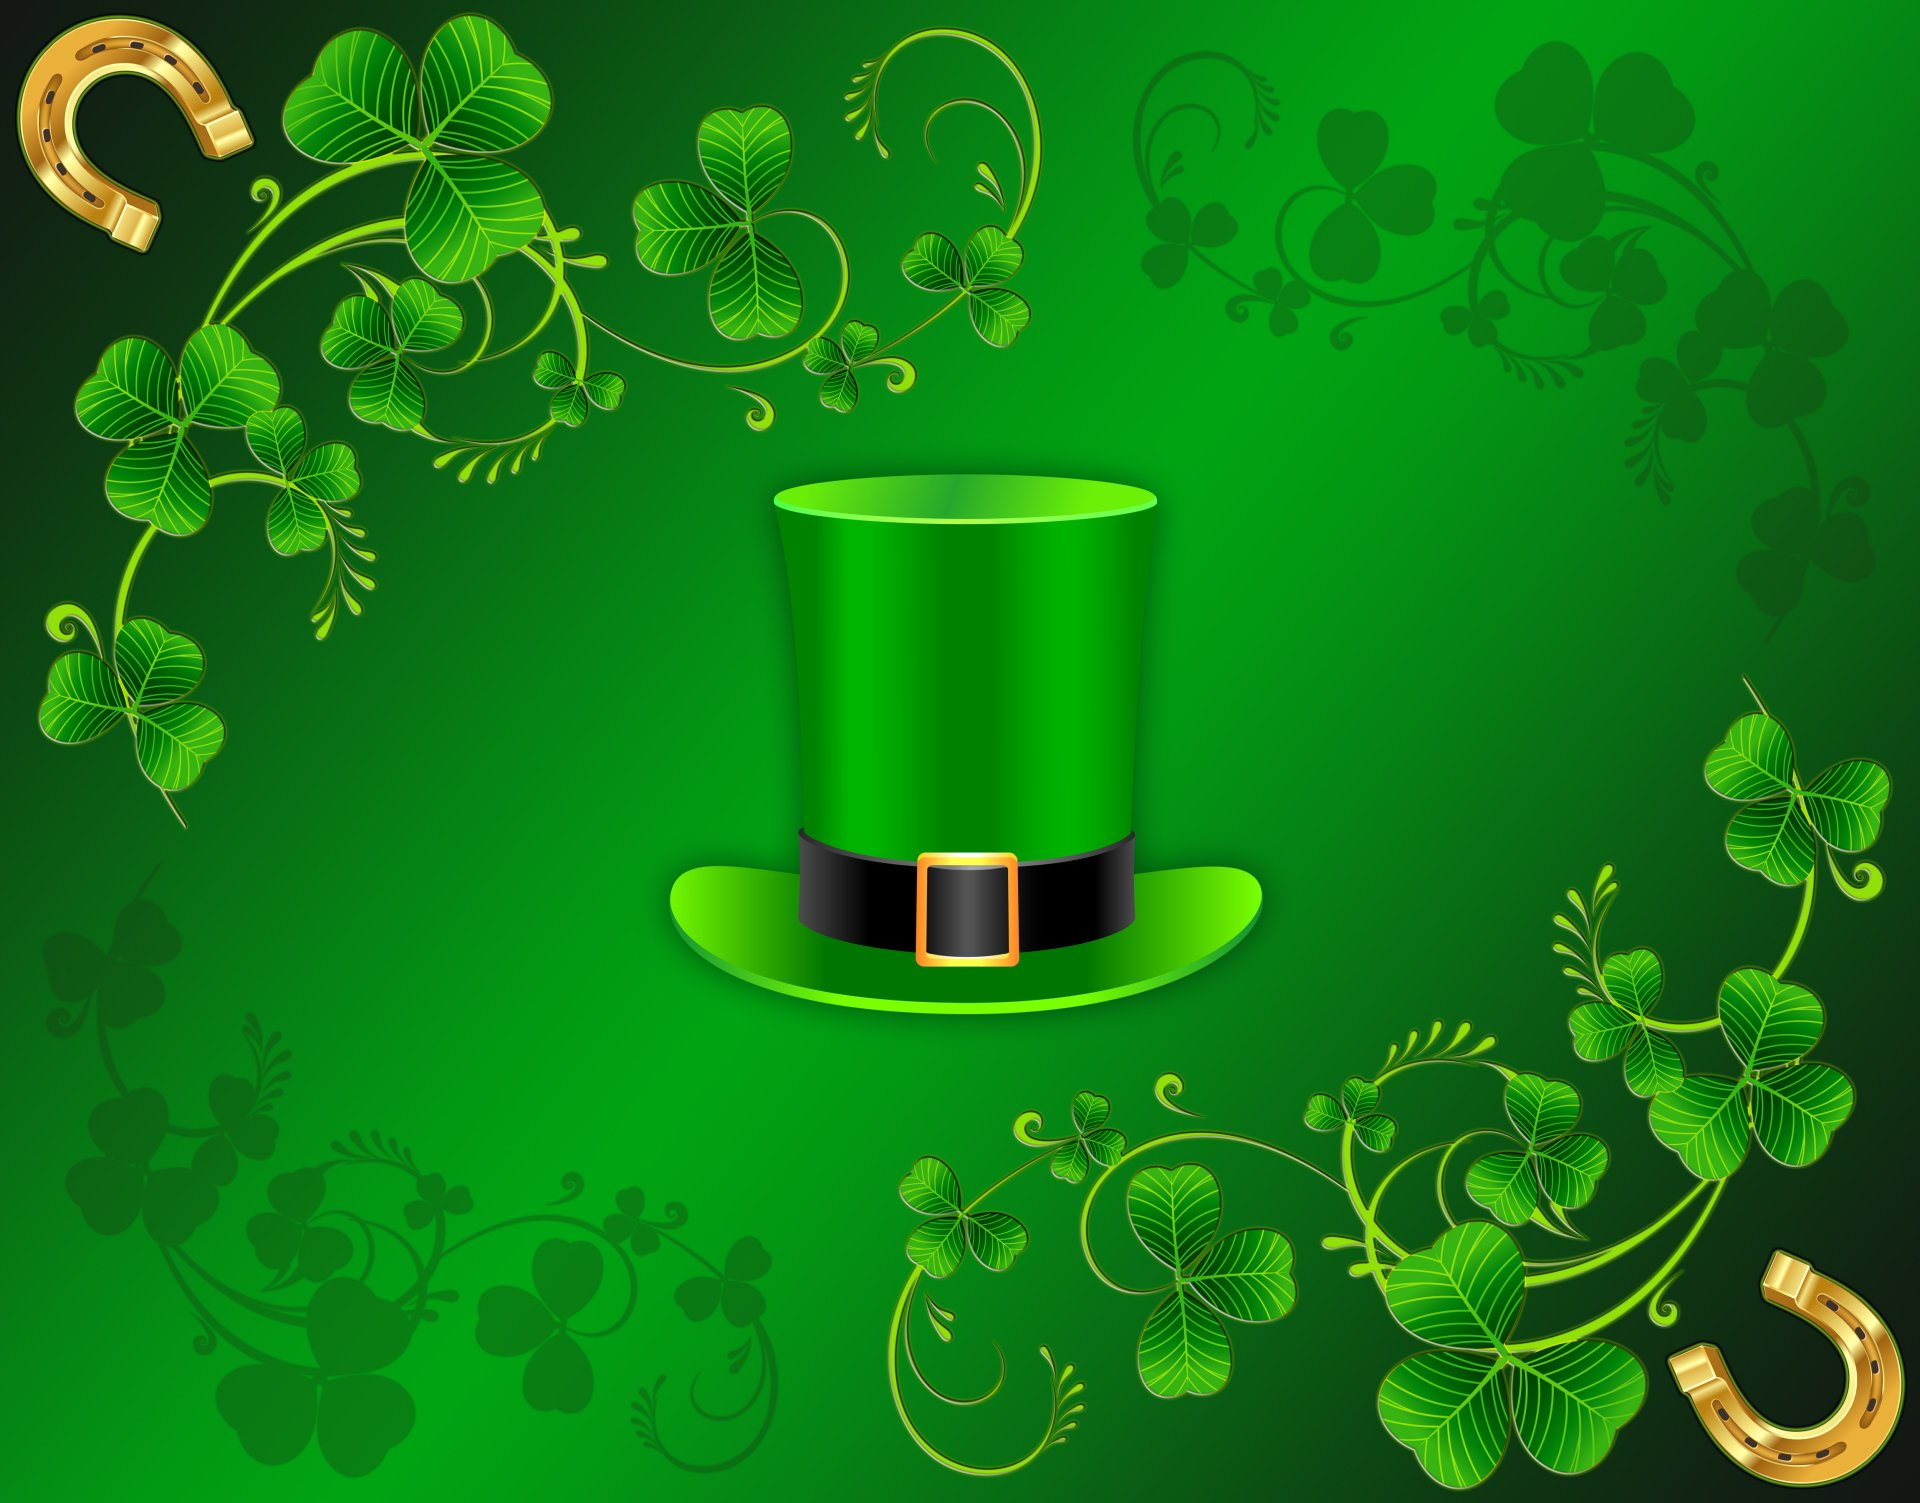 Holiday - St. Patrick's Day  Clover Hat Green Wallpaper